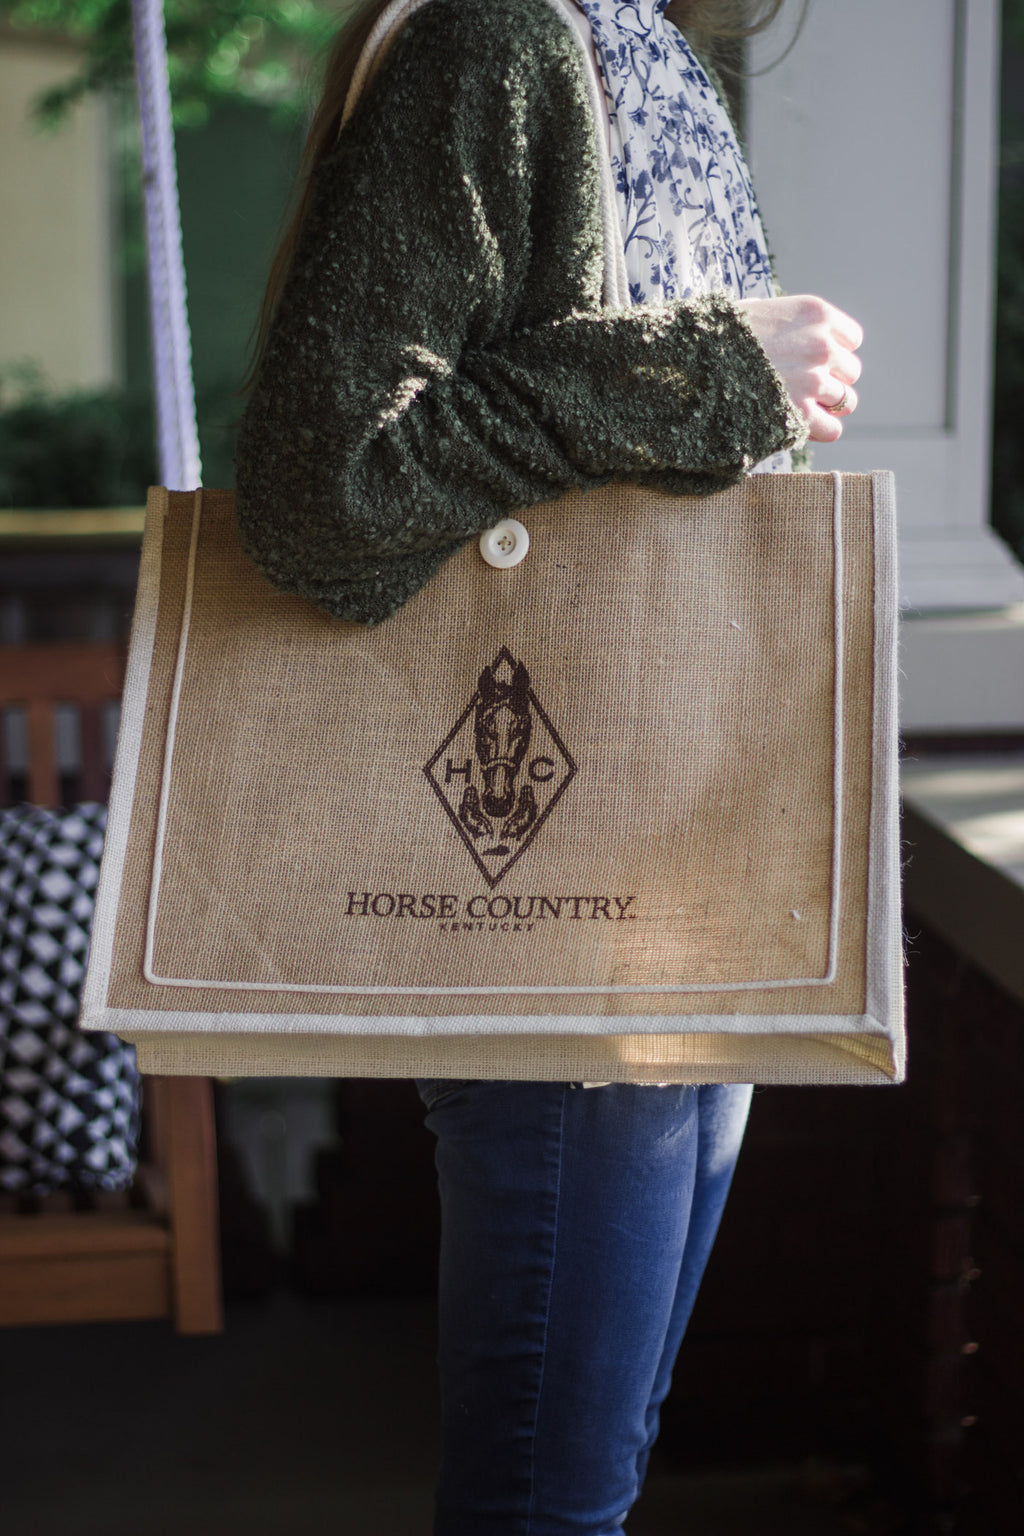 Horse Country Jute Market Tote